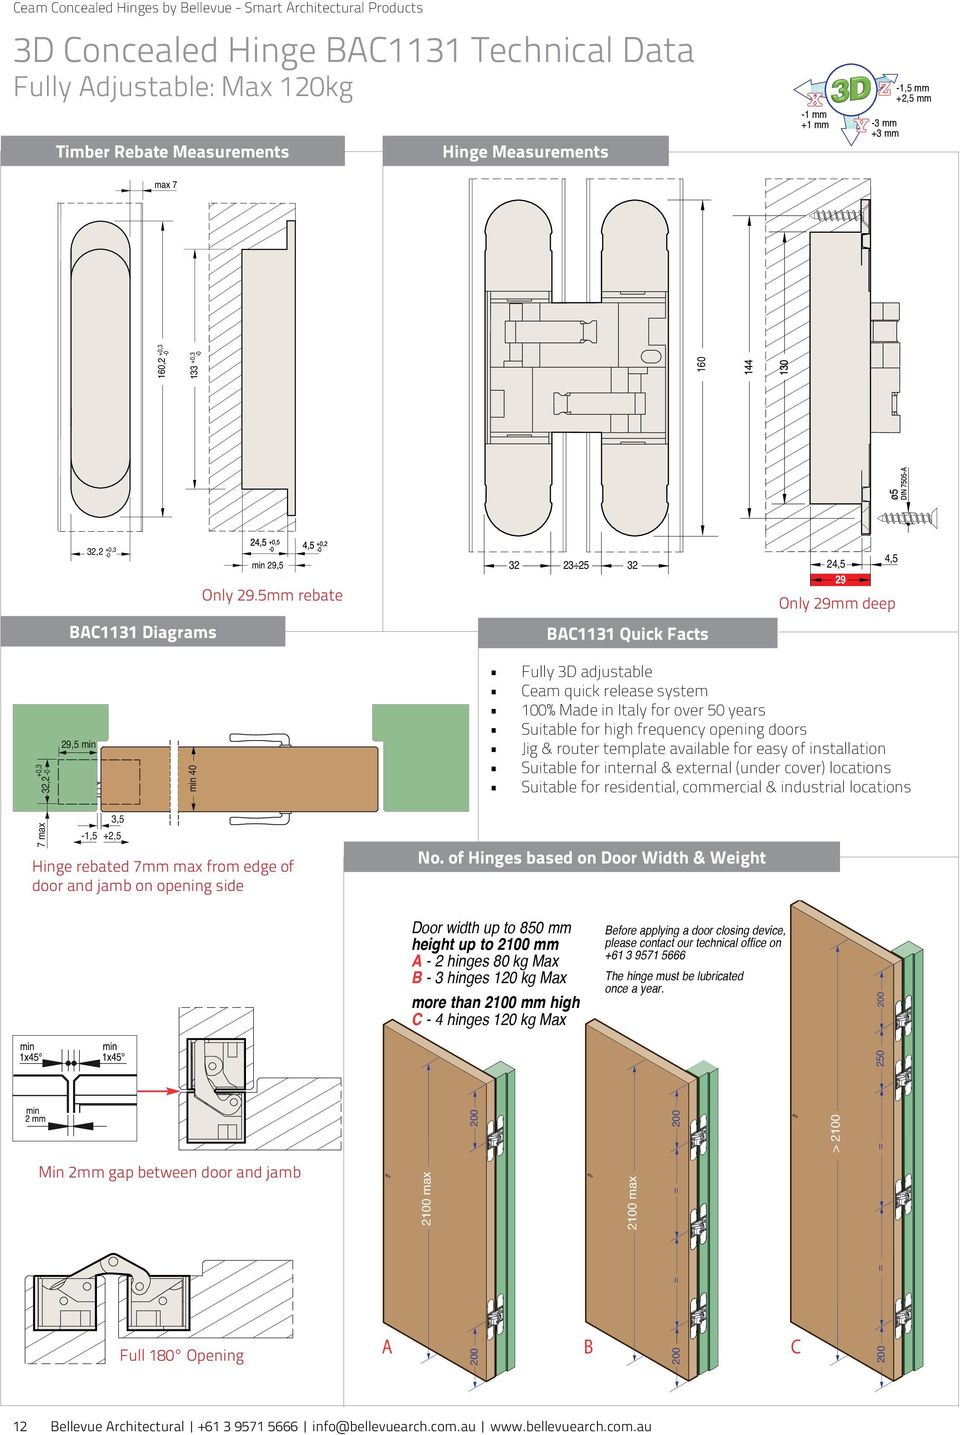 5mm rebate 21 max 21 max in 2 1131 Diagrams Hinge rebated 7mm max from edge of door and jamb on opening side No.